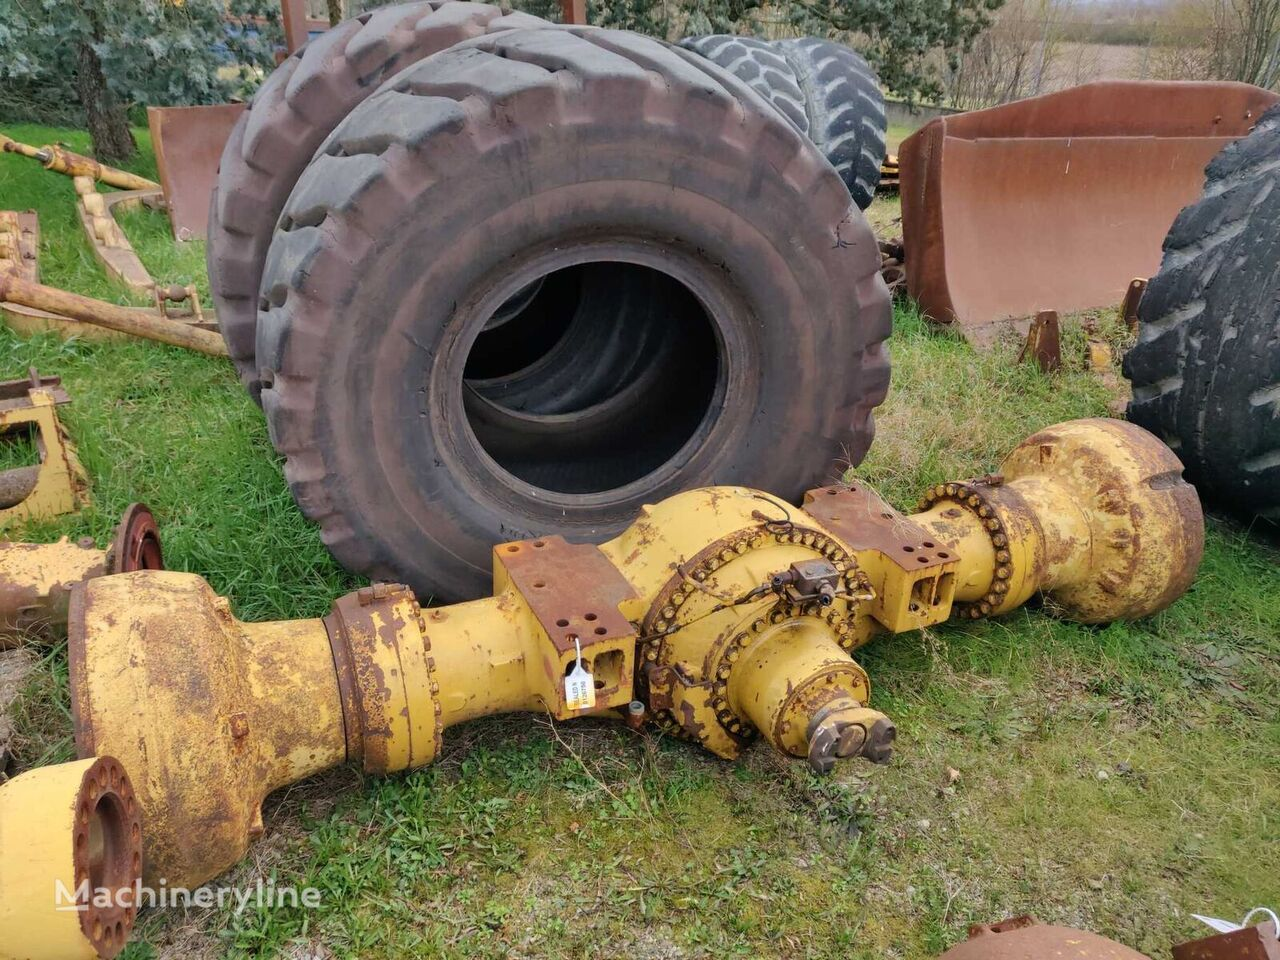 FRONT FIXED AXLE COMPLETE WITH DIFFERENTIAL AND BEVEL GEAR, FINA drive axle for CATERPILLAR  988G  material handling equipment